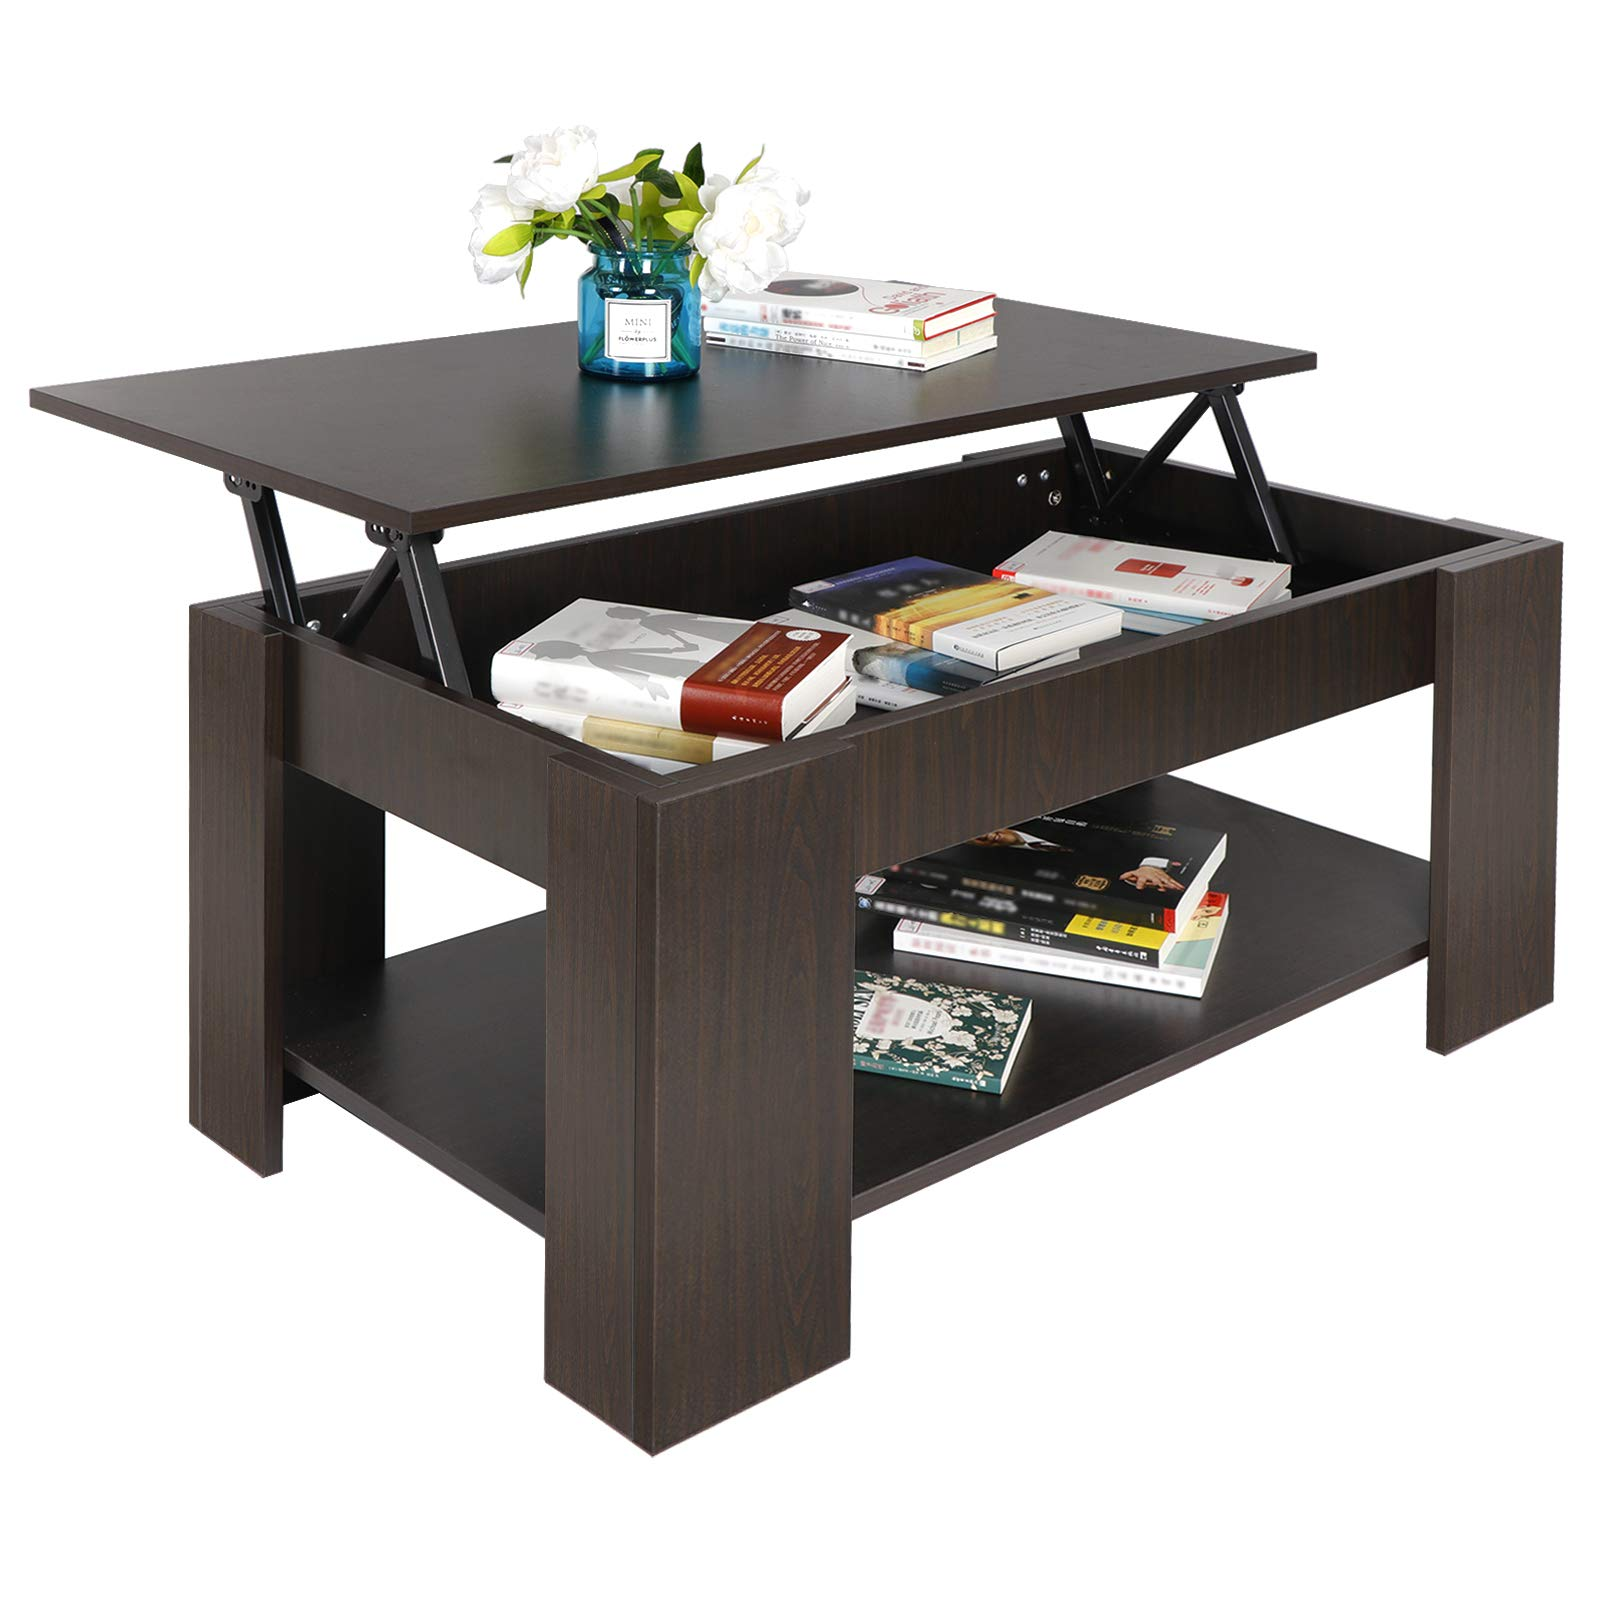 SUPER DEAL Lift Top Coffee Table w/Hidden Compartment and Storage Shelves Pop-Up Storage Cocktail Table (#1) by SUPER DEAL